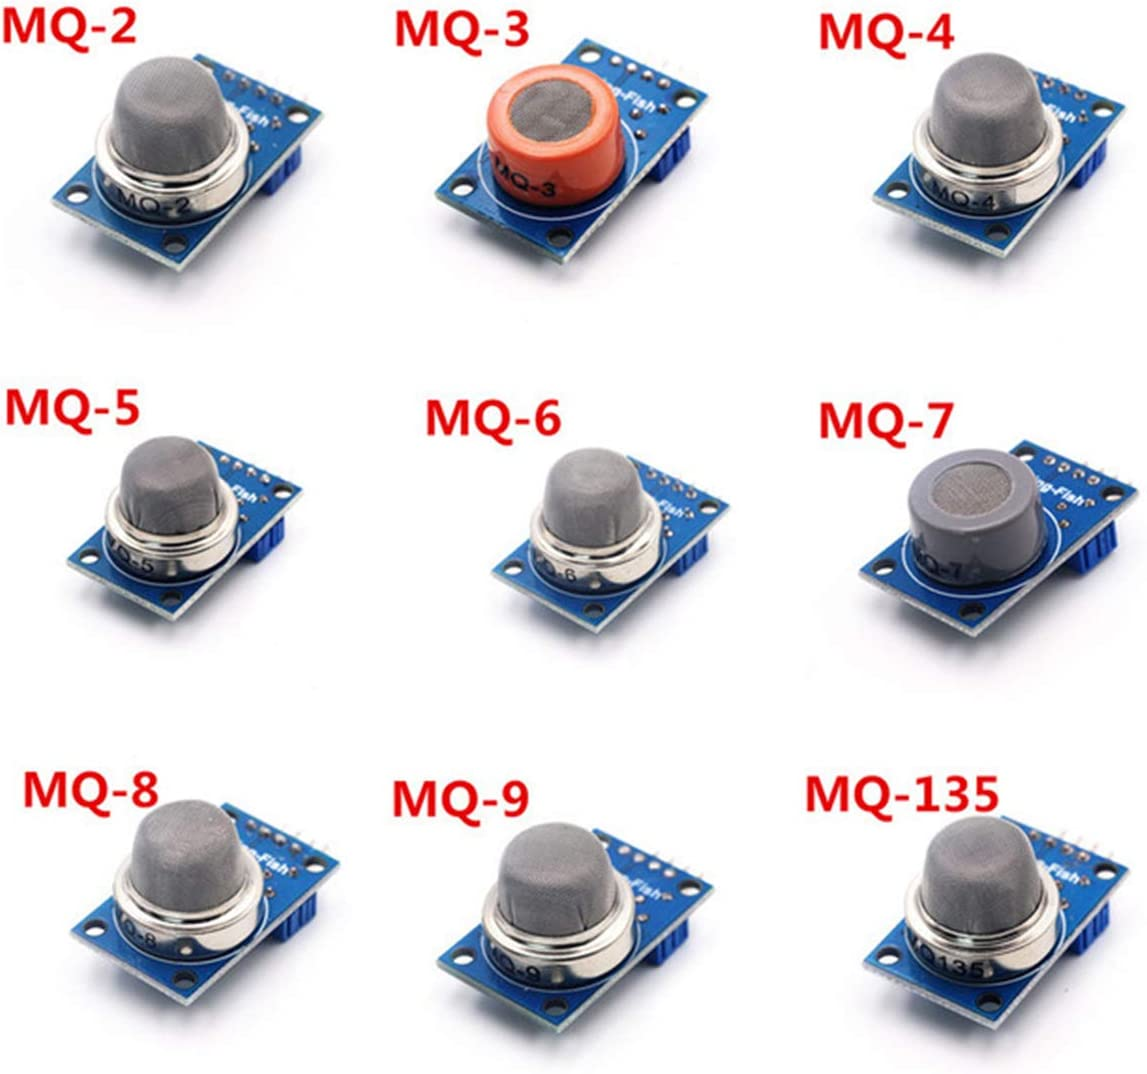 LuxtechPro Gas Detection Sensor Modules 9 Kit MQ Series Gas Sensor Modules MQ MQ-2 MQ-3 MQ-4 MQ-5 MQ-6 MQ-7 MQ-8 MQ-9 MQ-135 Components Electronics for Arduino and Raspberry Pi